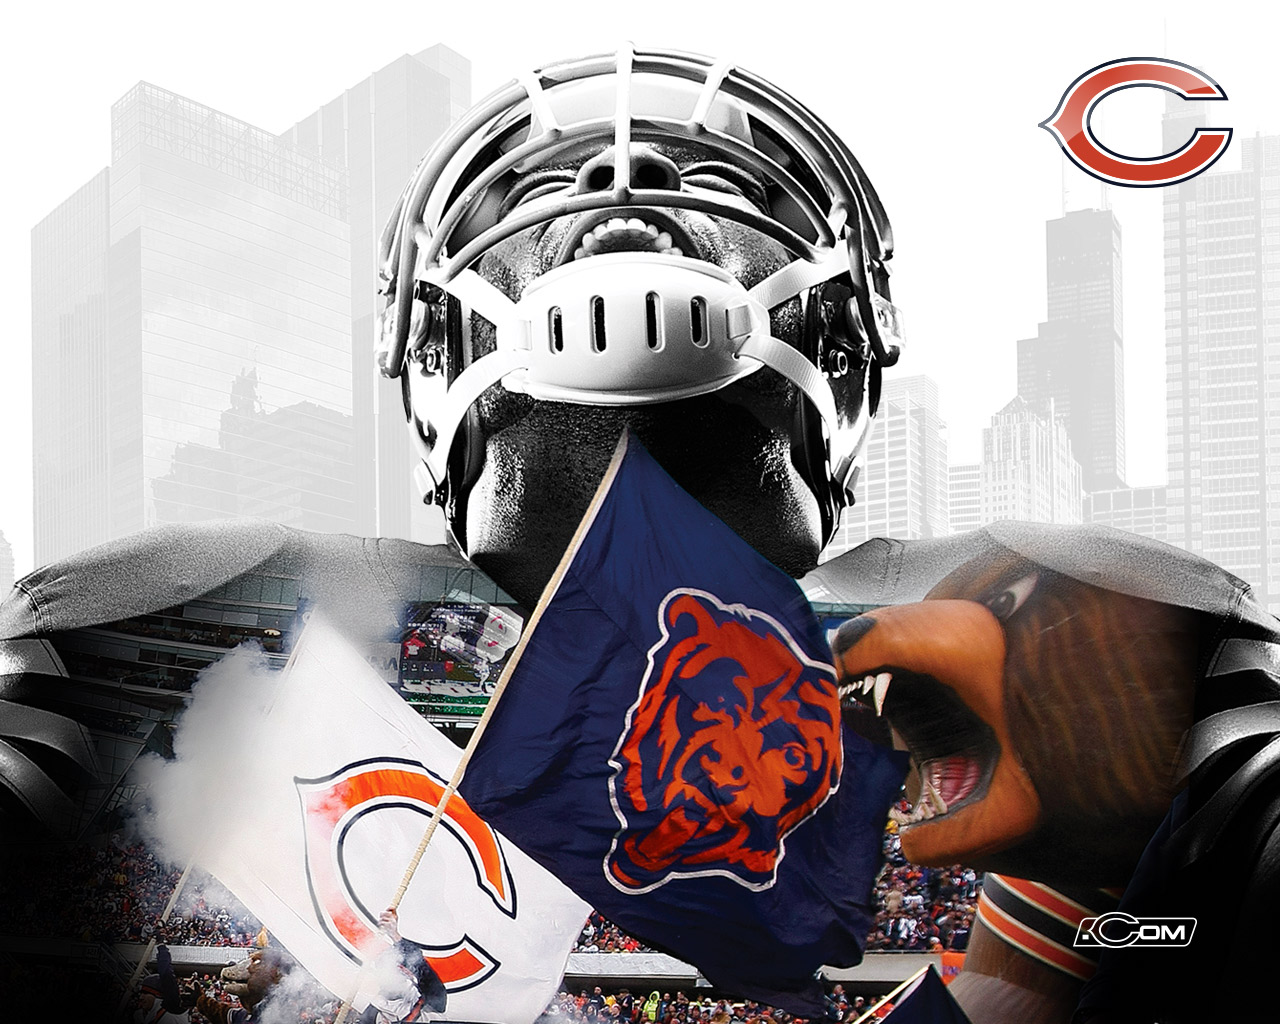 1280x1024 - Chicago Bears Wallpapers 5